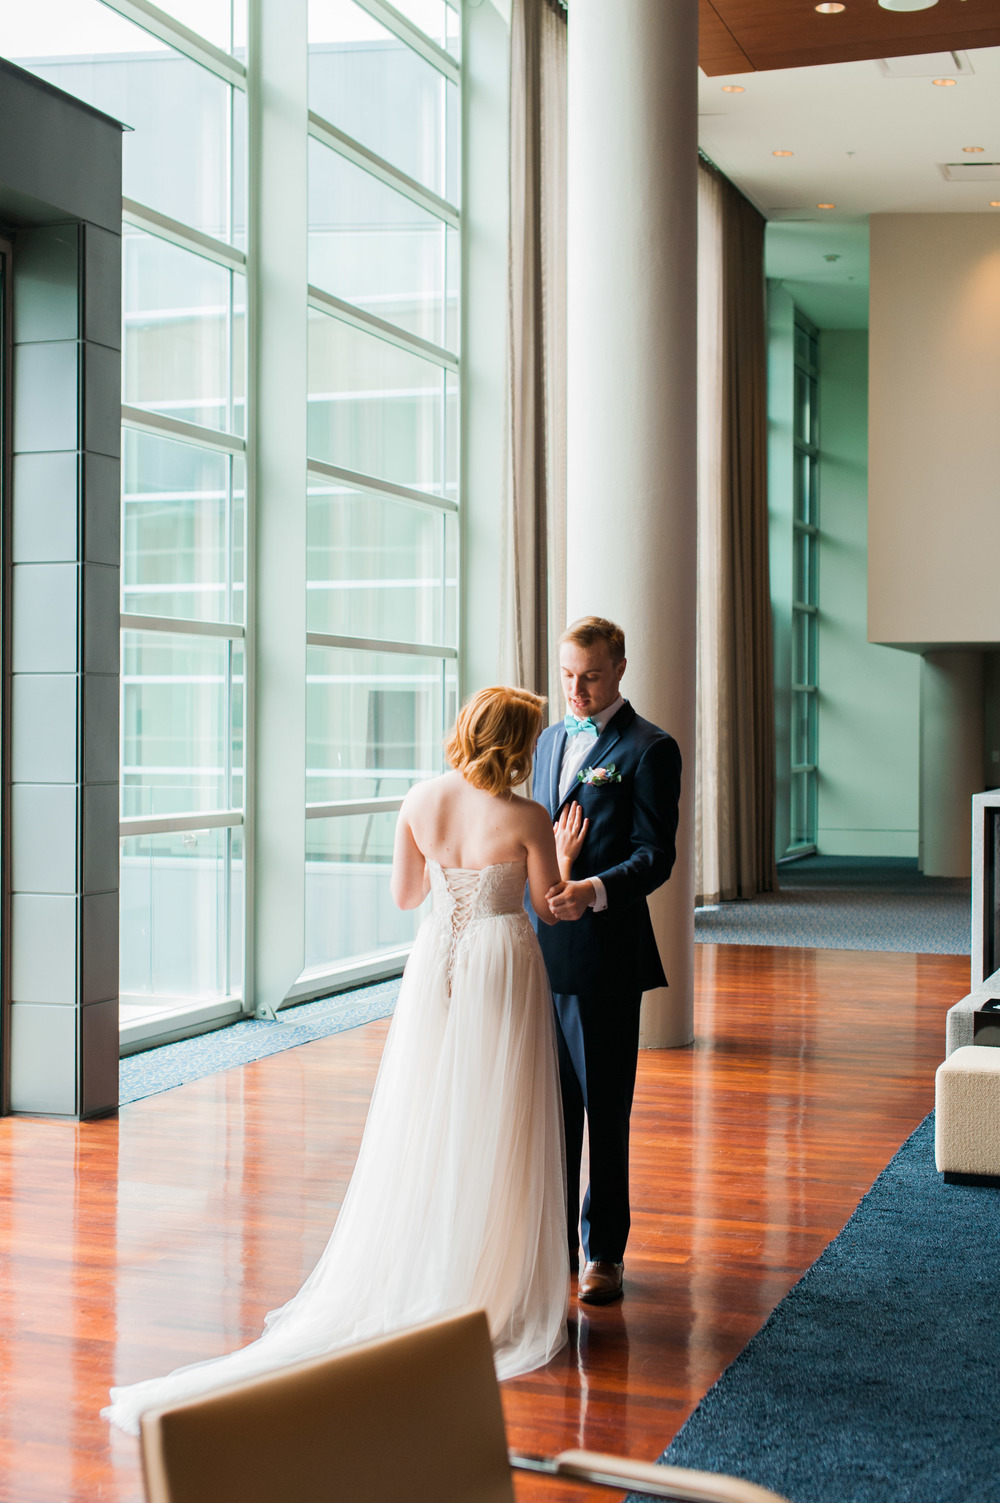 omaha-holland-arts-center-wedding-30.jpg